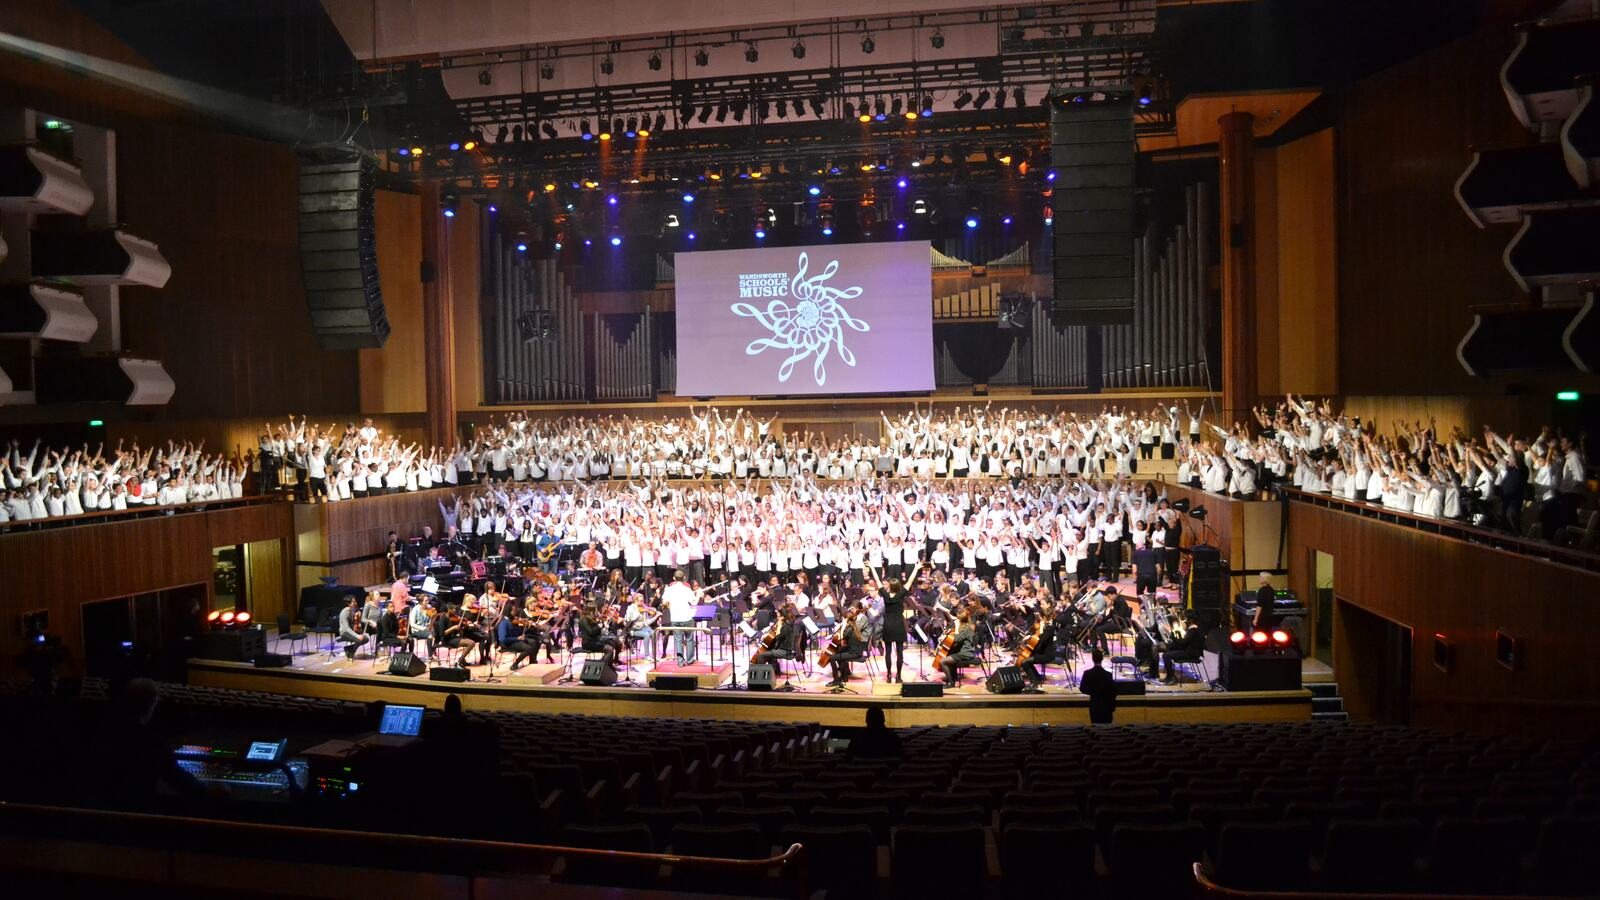 School orchestra and choir performing on stage